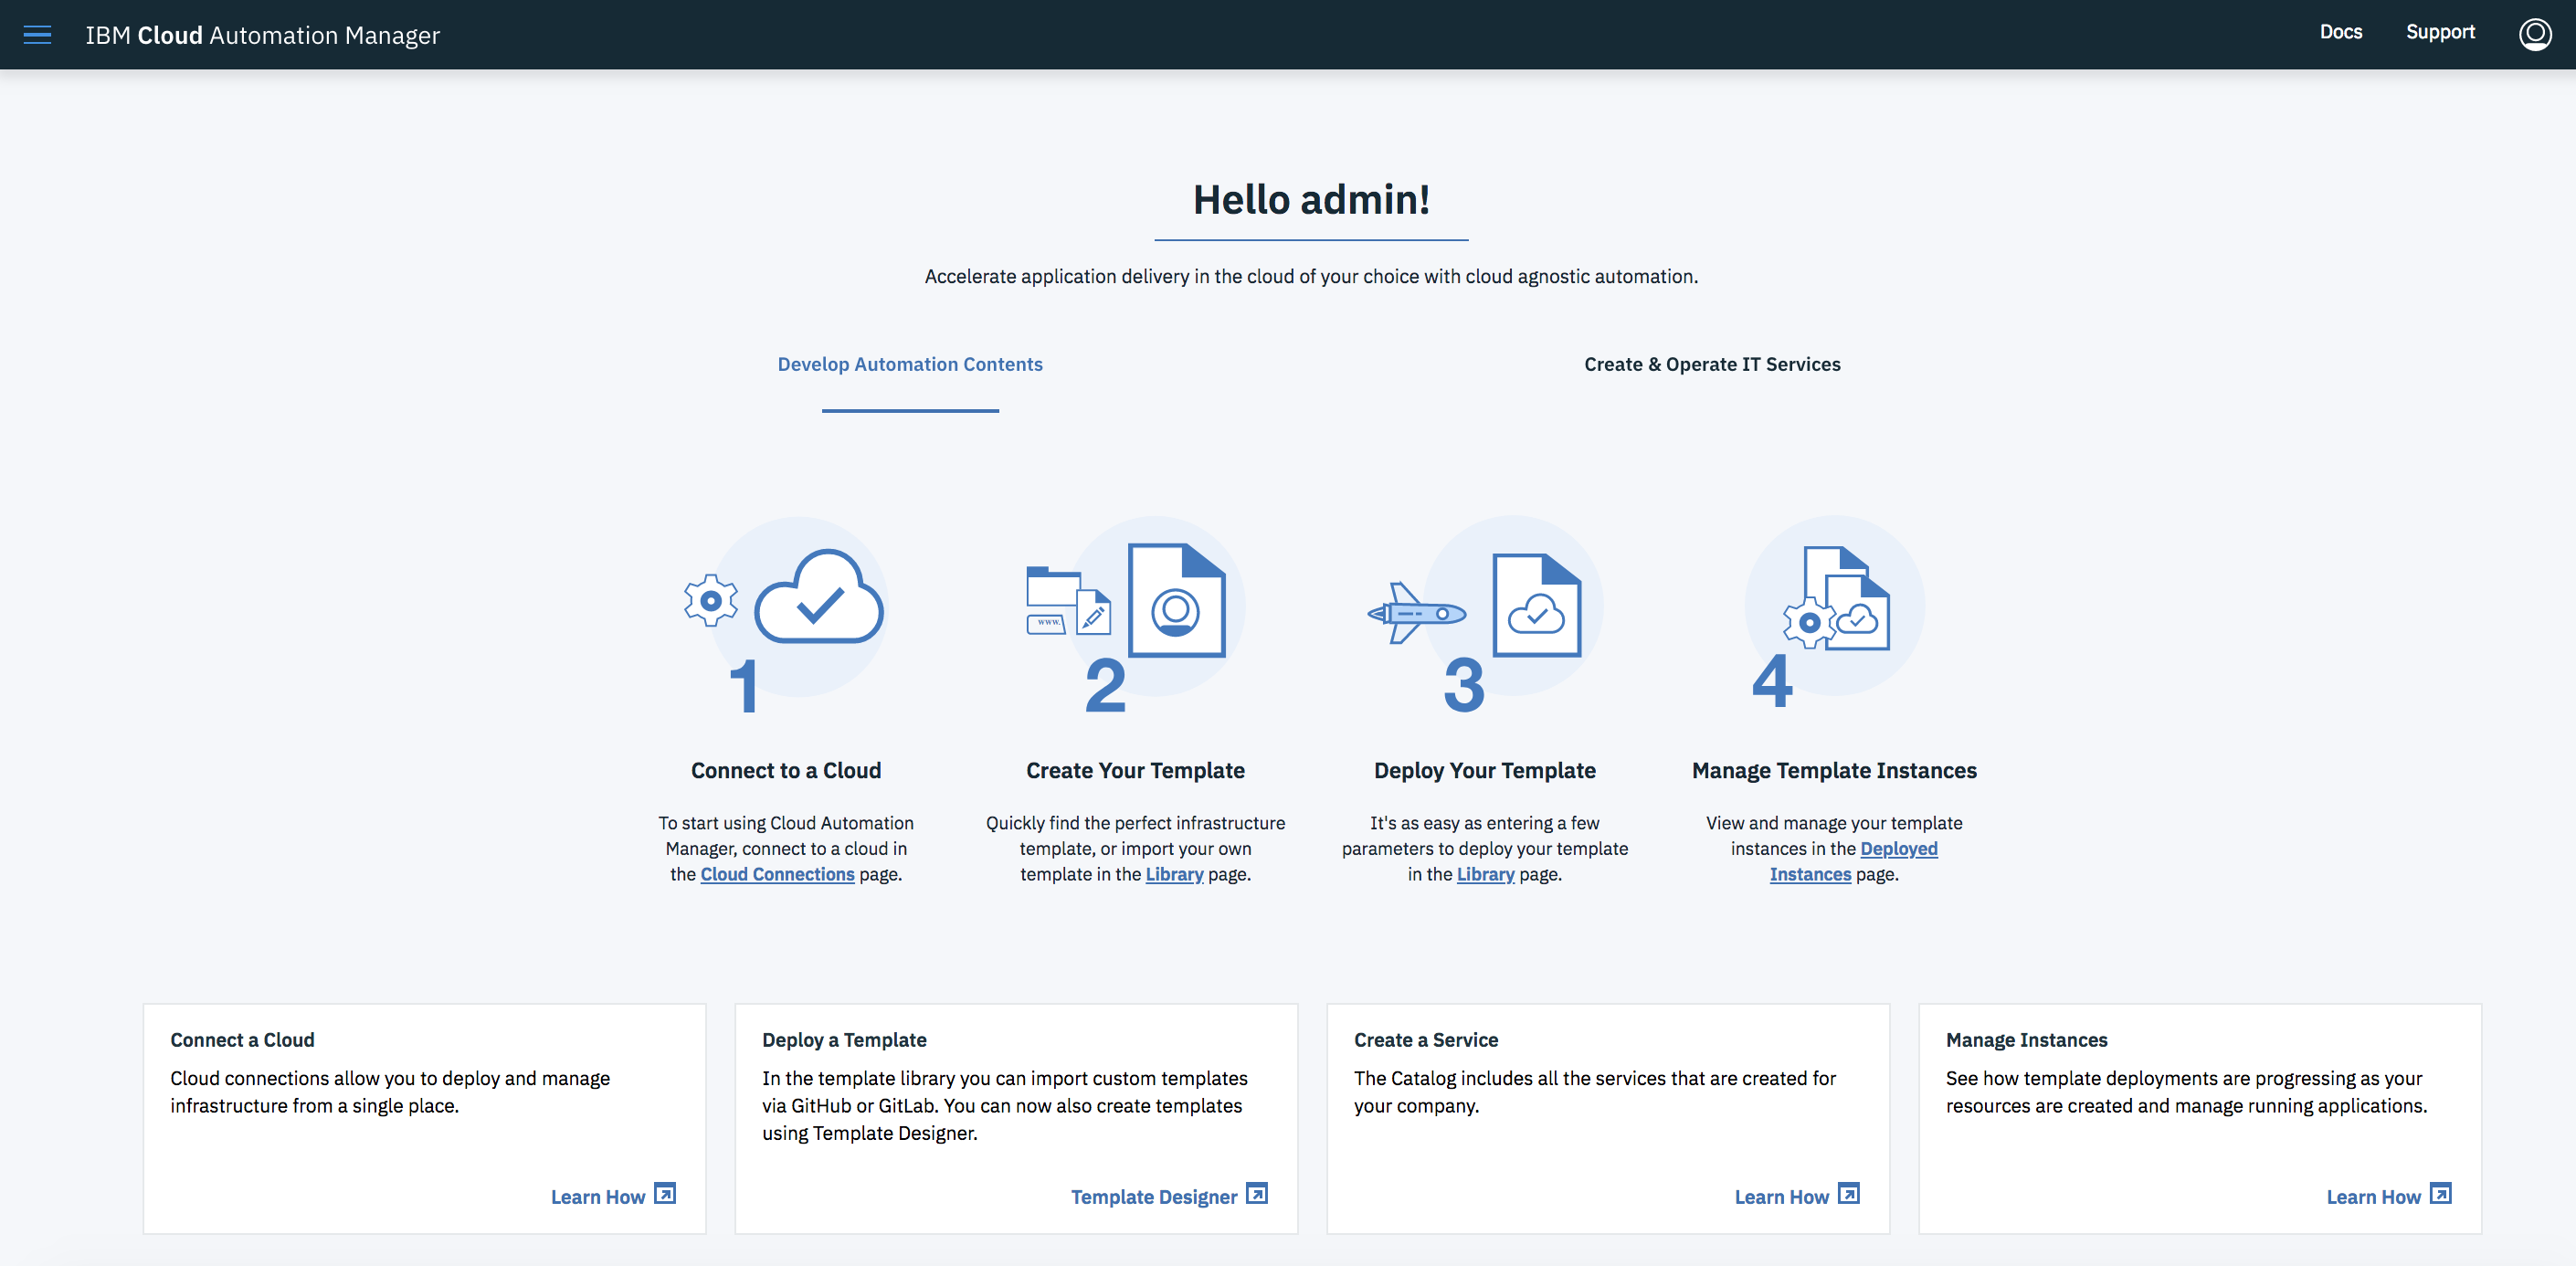 IBM Cloud Automation Manager - Docker Store